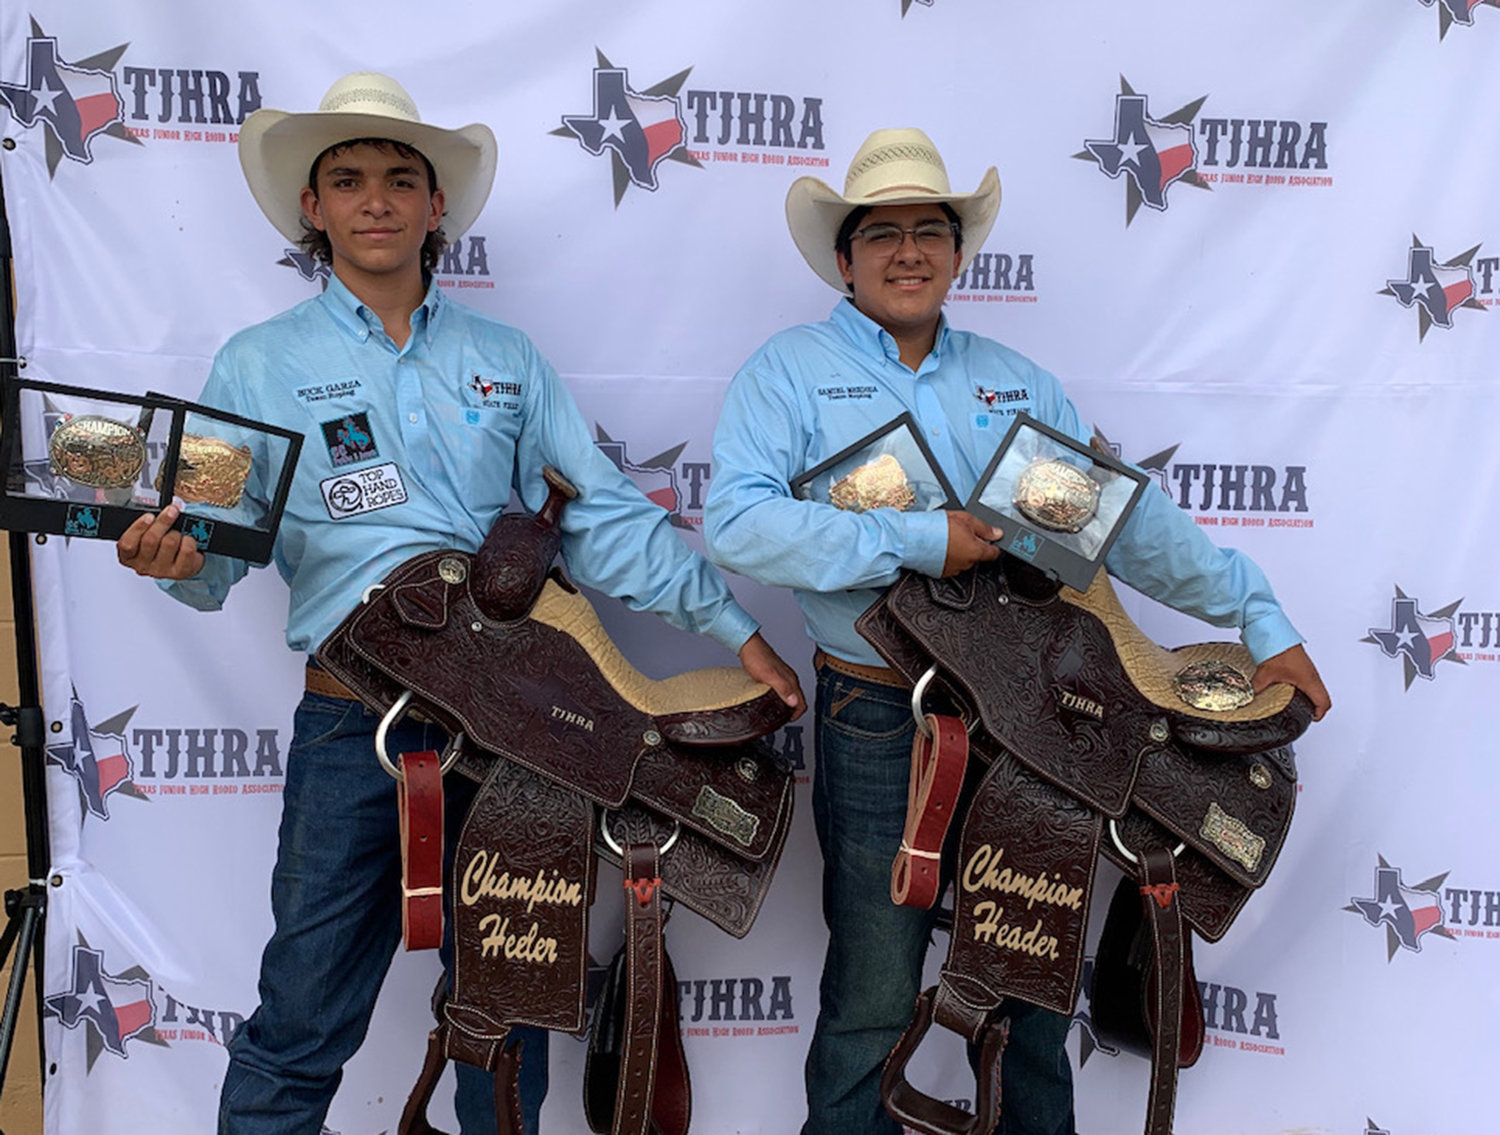 Team ropers Buck Garza (left) and his teammate Samuel Mendoza of Carrizo Springs proudly celebrate their victory at the TJHRA finals last Friday.